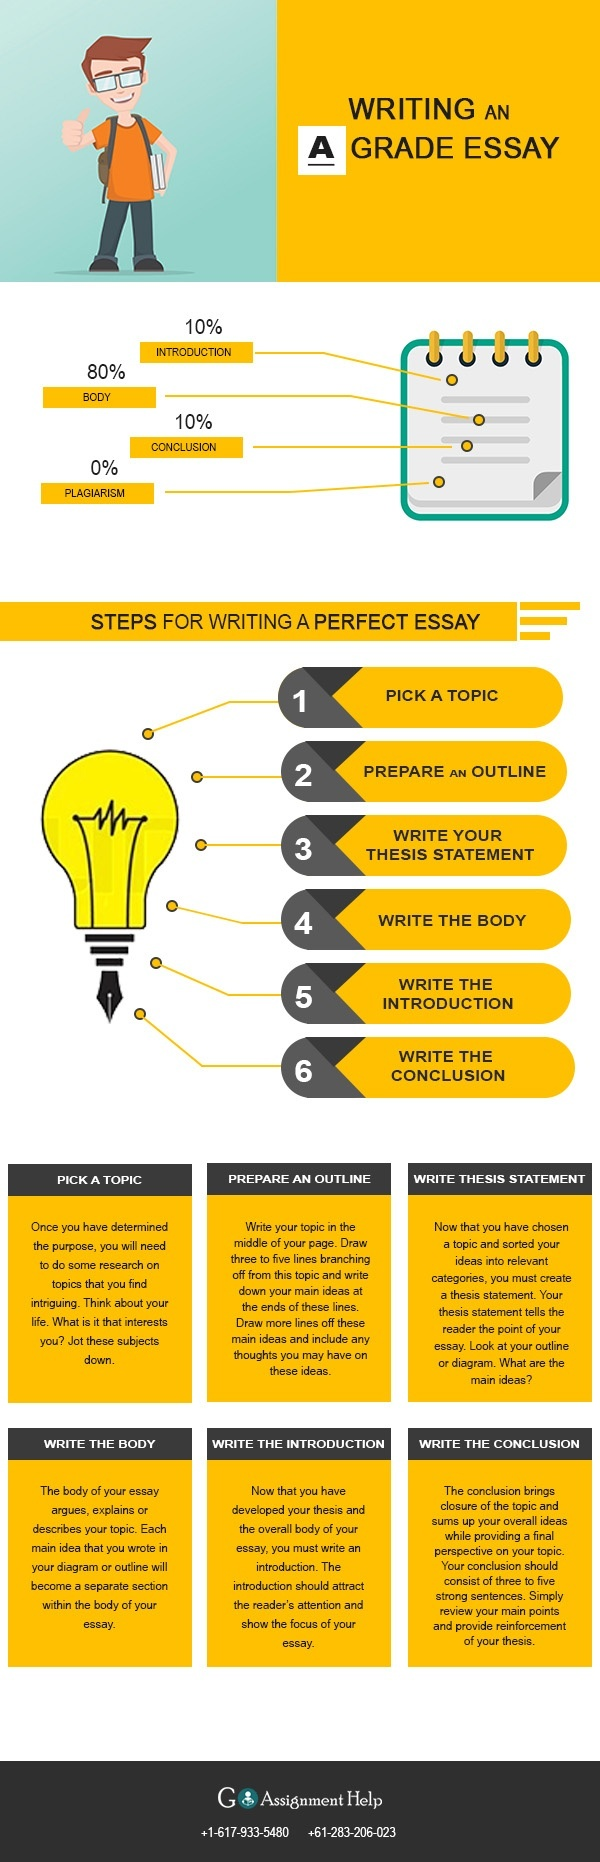 Essays On Water Here Is An Infographic Explaining  Steps For Writing An Essay To Score A  Grade Essay Topics High School also Why Writing Is Important Essay Essay Writing Tips How Do I Write A Topic Sentence In Essay Writing  Bob Marley Biography Essay